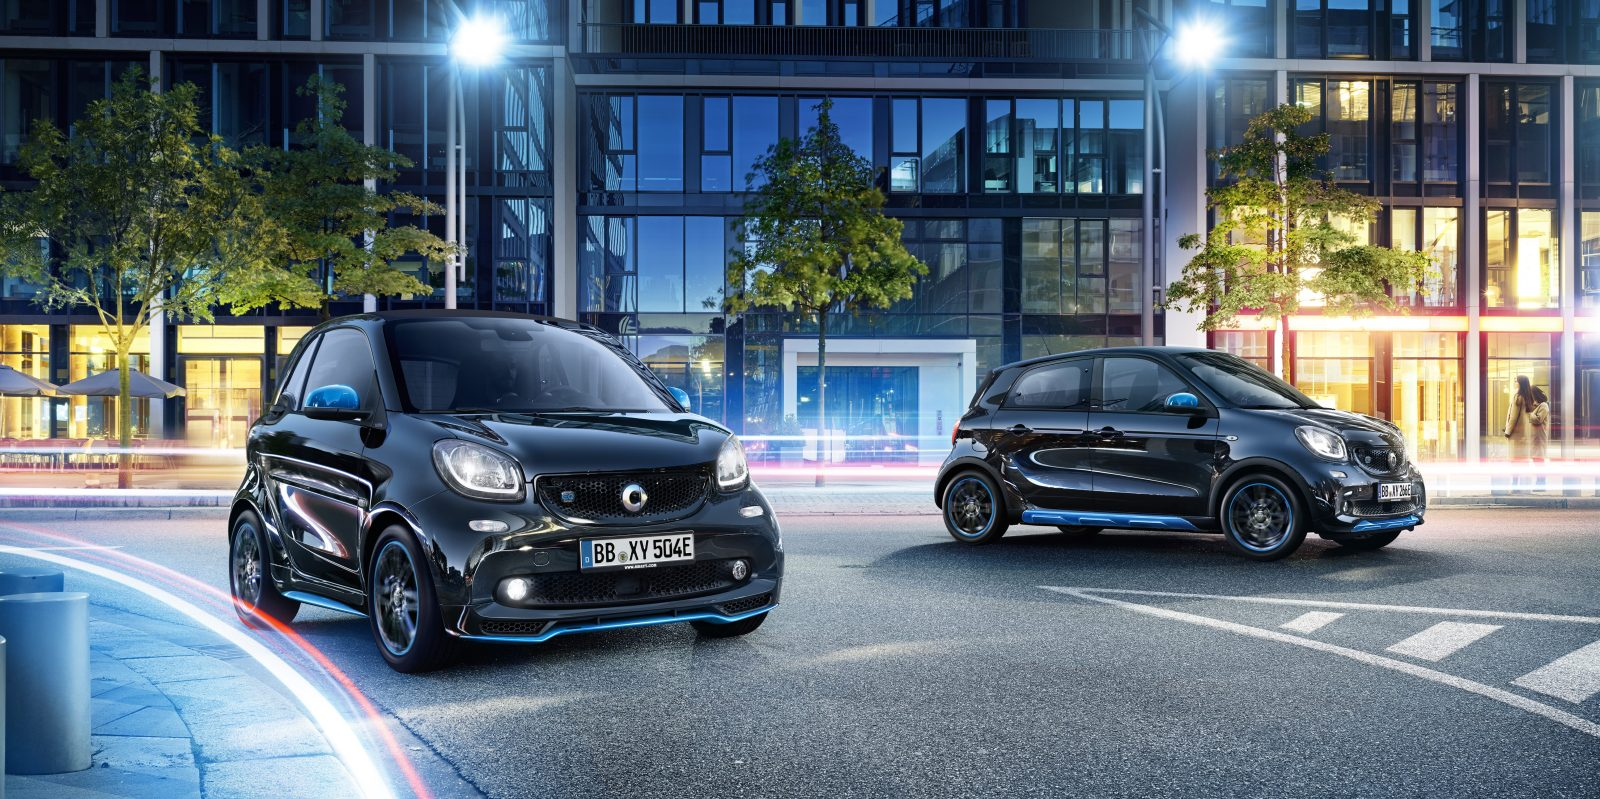 Daimler Brings Electric Smart Cars Under New Mercedes Benz Eq Family Adds Faster Charging